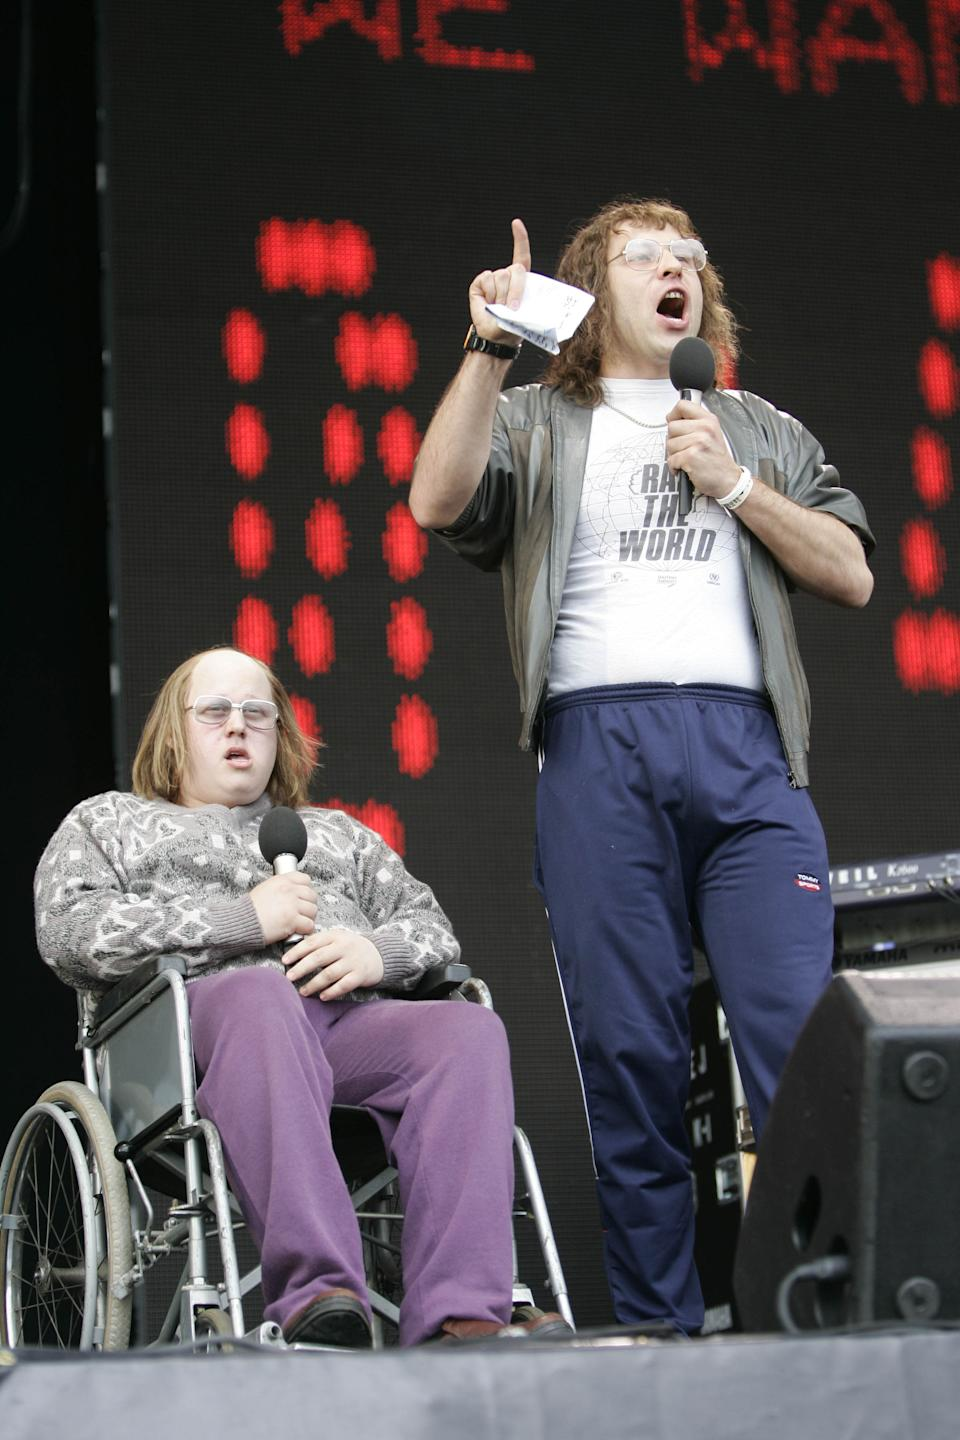 British comedians Matt Lucas, seated in wheelchair, and David Walliams perform at the Live 8 concert in Hyde Park, London, Saturday, July 2, 2005.The concert is part of a series of free concerts being held around the world designed to press leaders of the rich G8 countries to help impoverished African nations. (AP Photo/Lefteris Pitarakis)